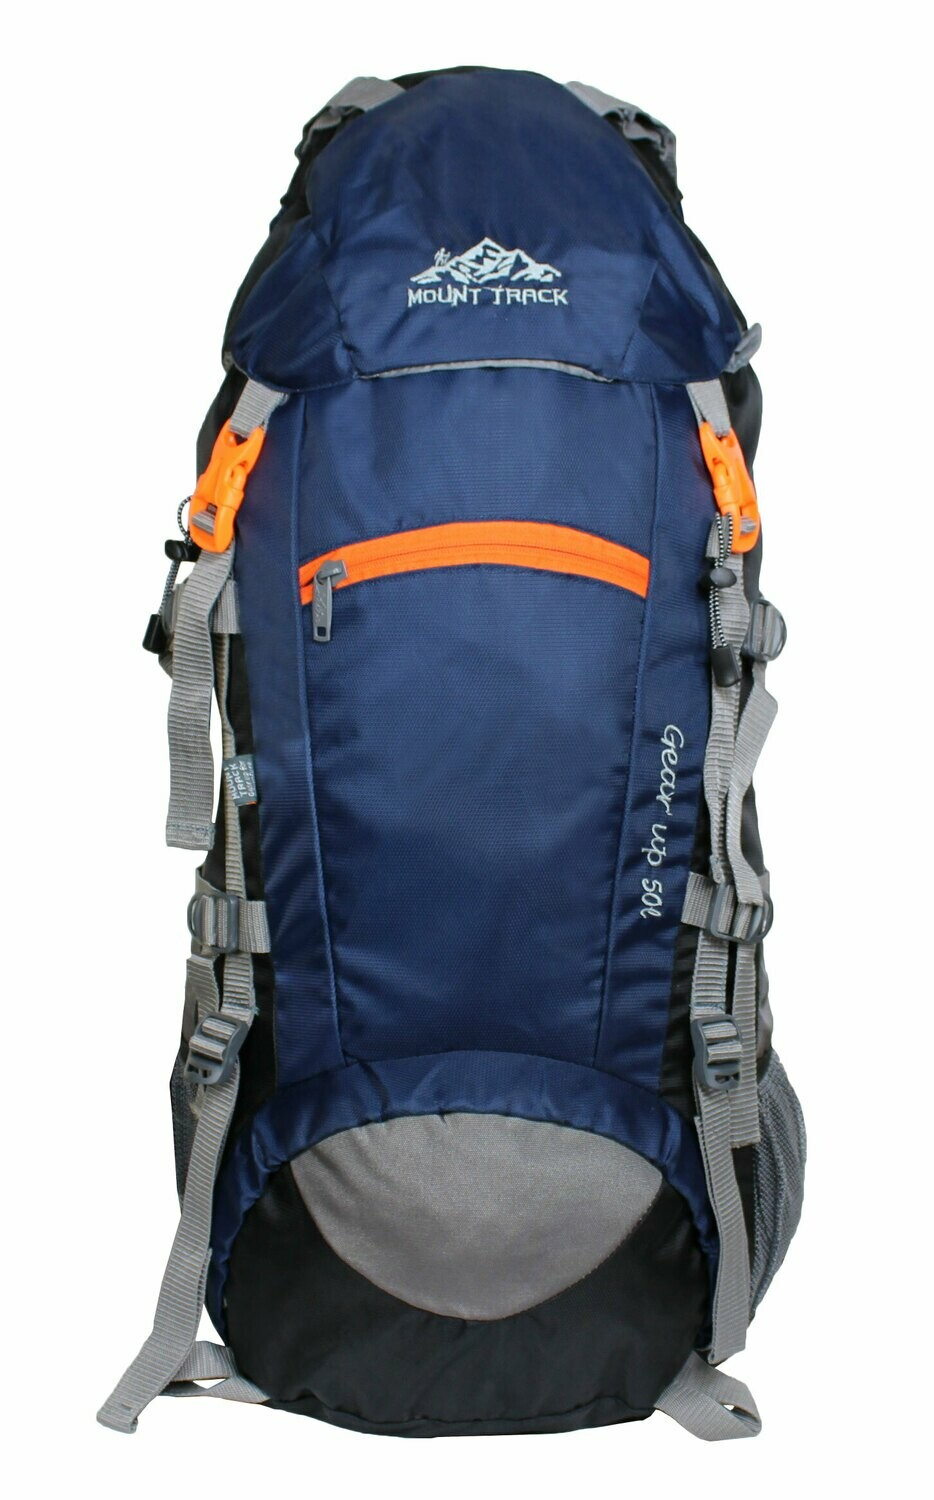 Mount Track 50 Ltrs Rucksack, Hiking & Trekking Backpack